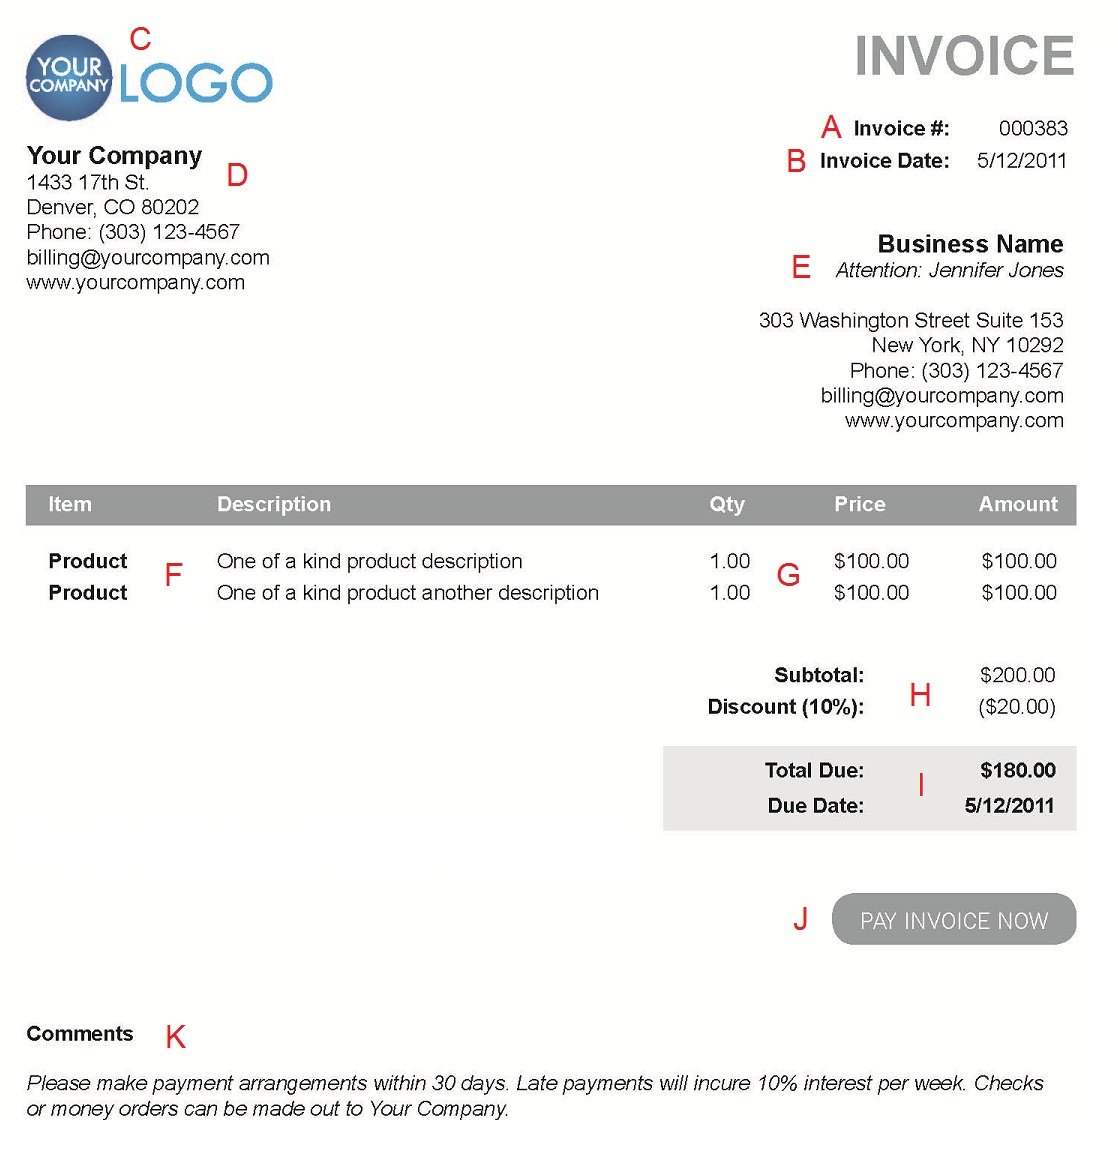 Coolmathgamesus  Fascinating The  Different Sections Of An Electronic Payment Invoice With Marvelous A  With Astounding  Honda Accord Invoice Also Freelance Designer Invoice In Addition Dealer Invoice Price Definition And Microsoft Invoicing As Well As Service Rendered Invoice Additionally Invoice Templte From Paysimplecom With Coolmathgamesus  Marvelous The  Different Sections Of An Electronic Payment Invoice With Astounding A  And Fascinating  Honda Accord Invoice Also Freelance Designer Invoice In Addition Dealer Invoice Price Definition From Paysimplecom